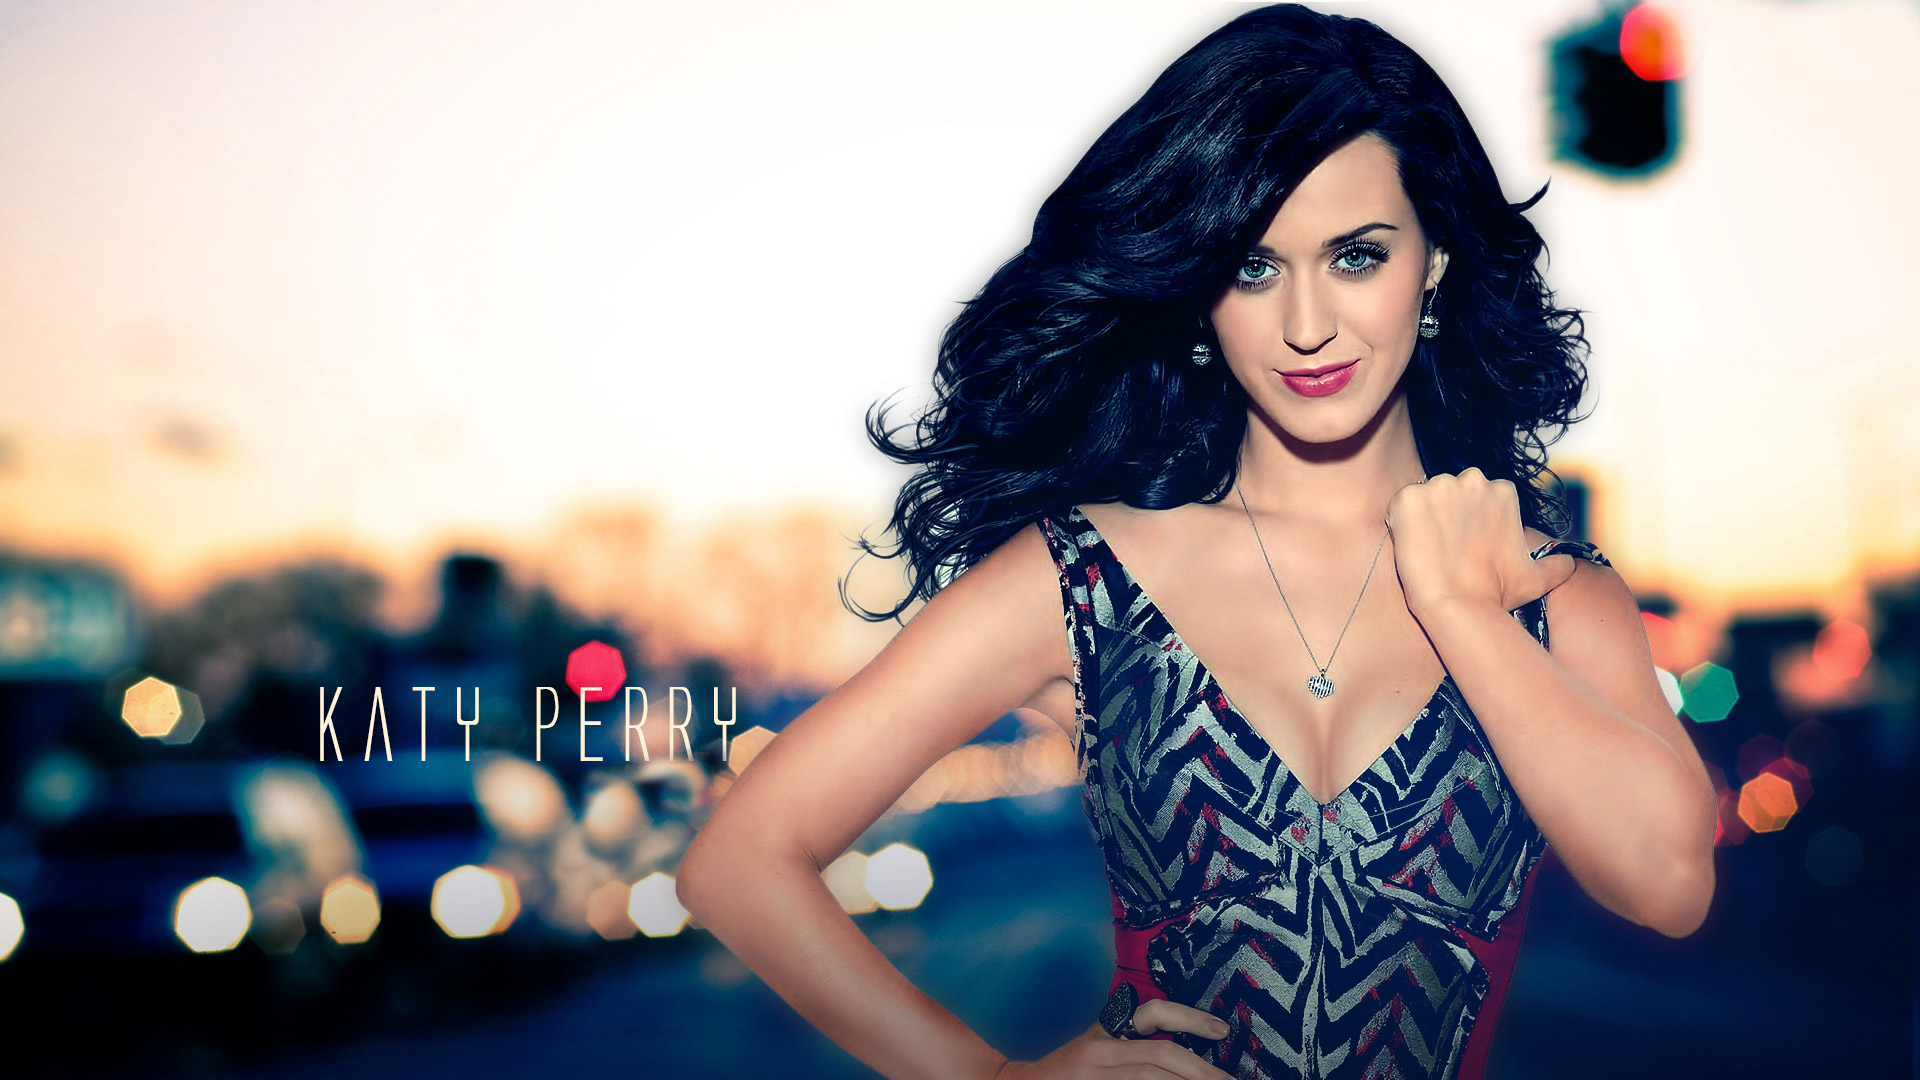 pics photos katy perry wallpaper hd